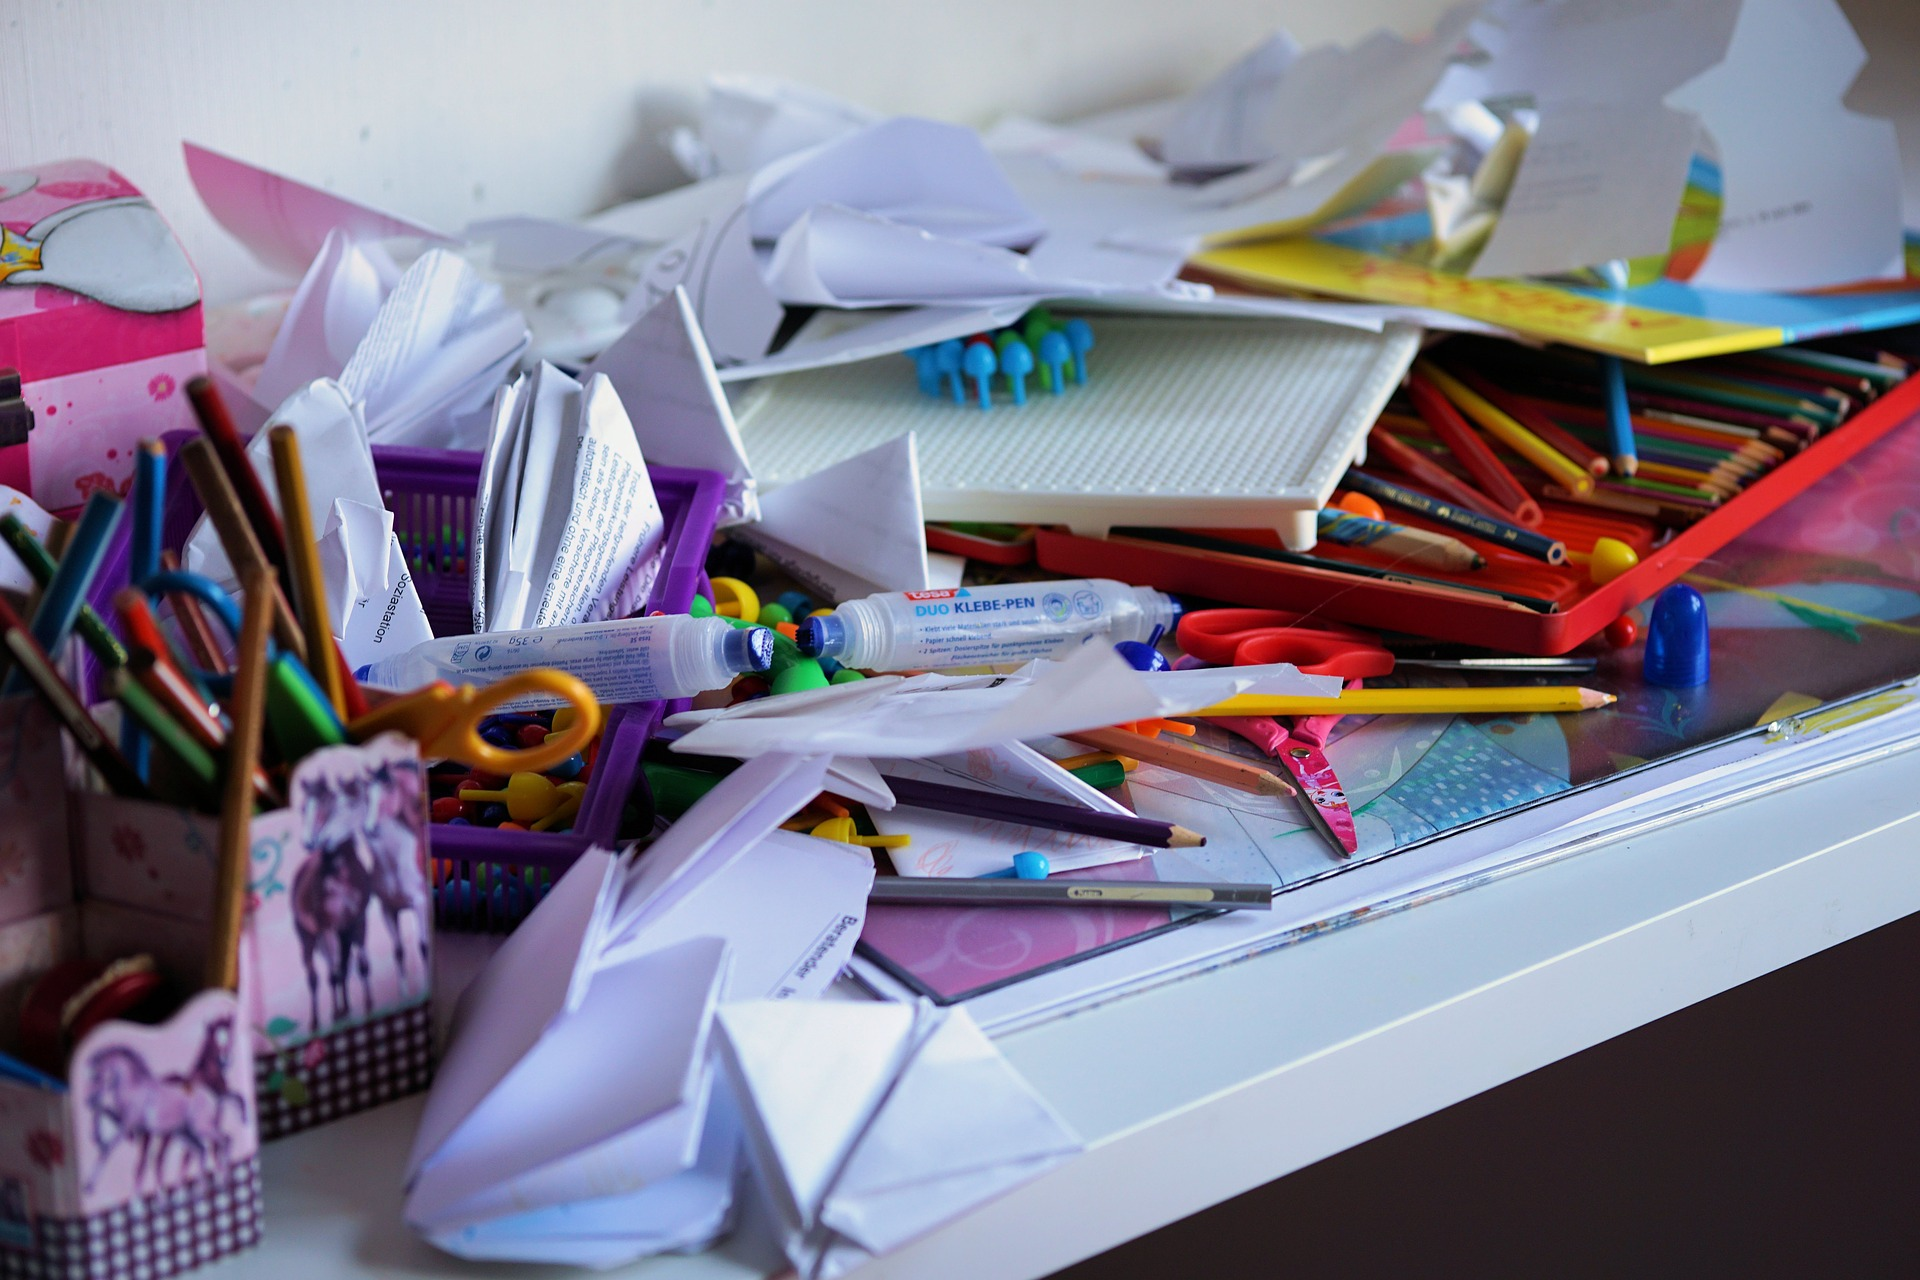 Benefits of clearing clutter